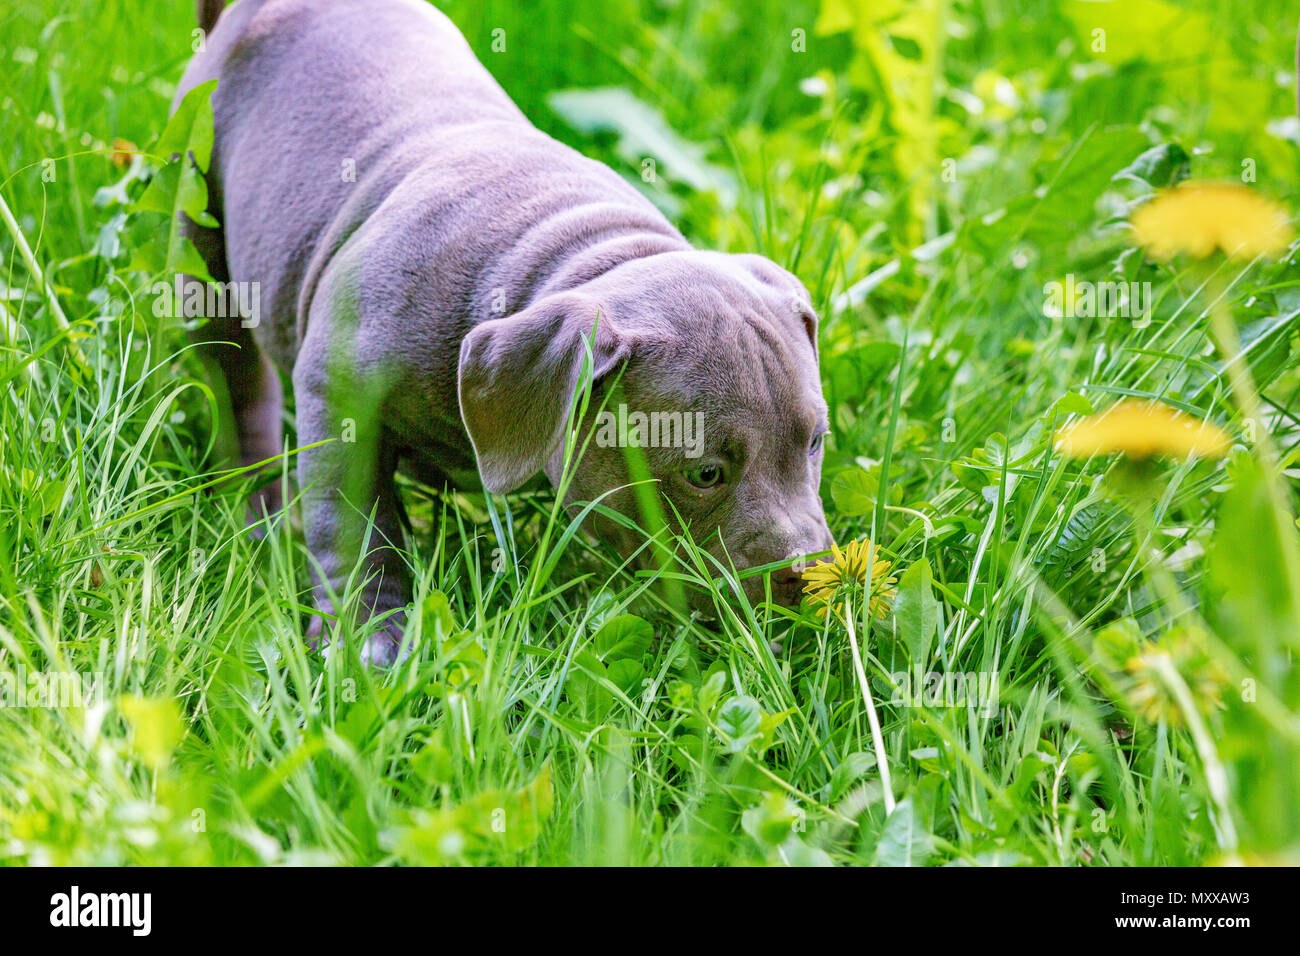 Cute Little Dog Sitting Among Yellow Flowers In Green Grass In The